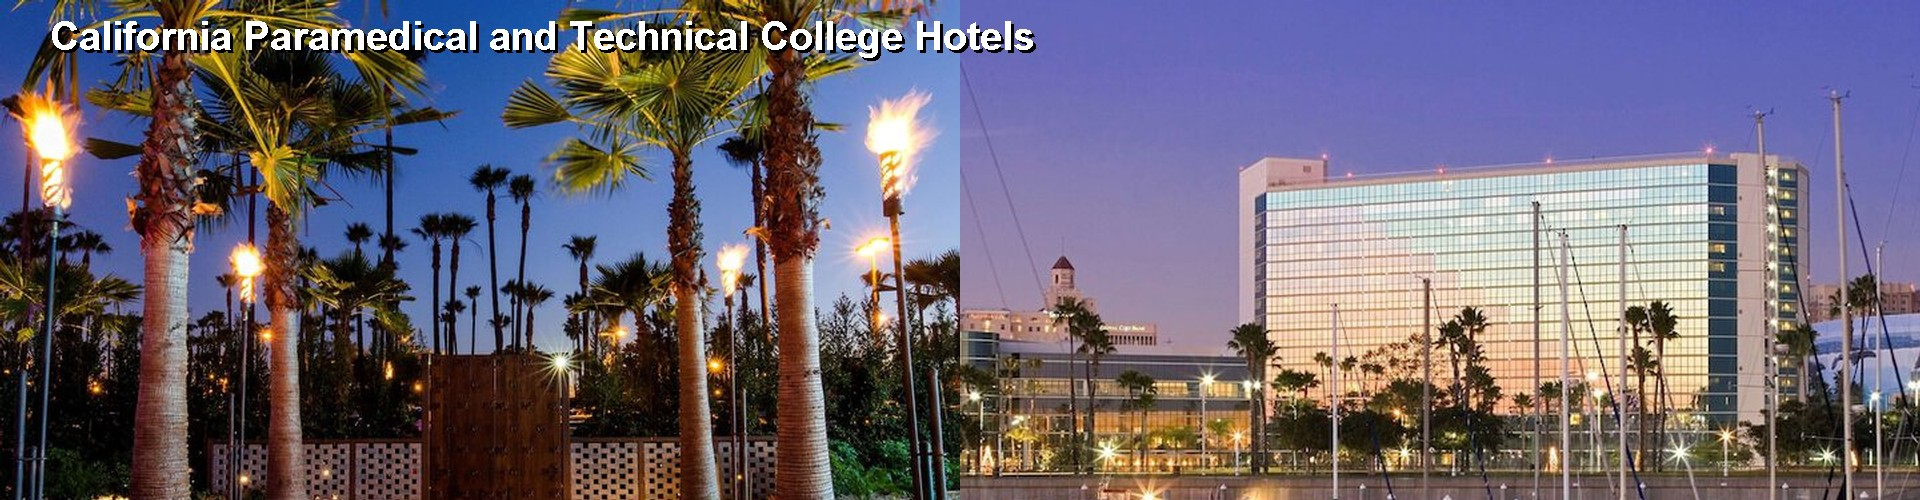 5 Best Hotels near California Paramedical and Technical College